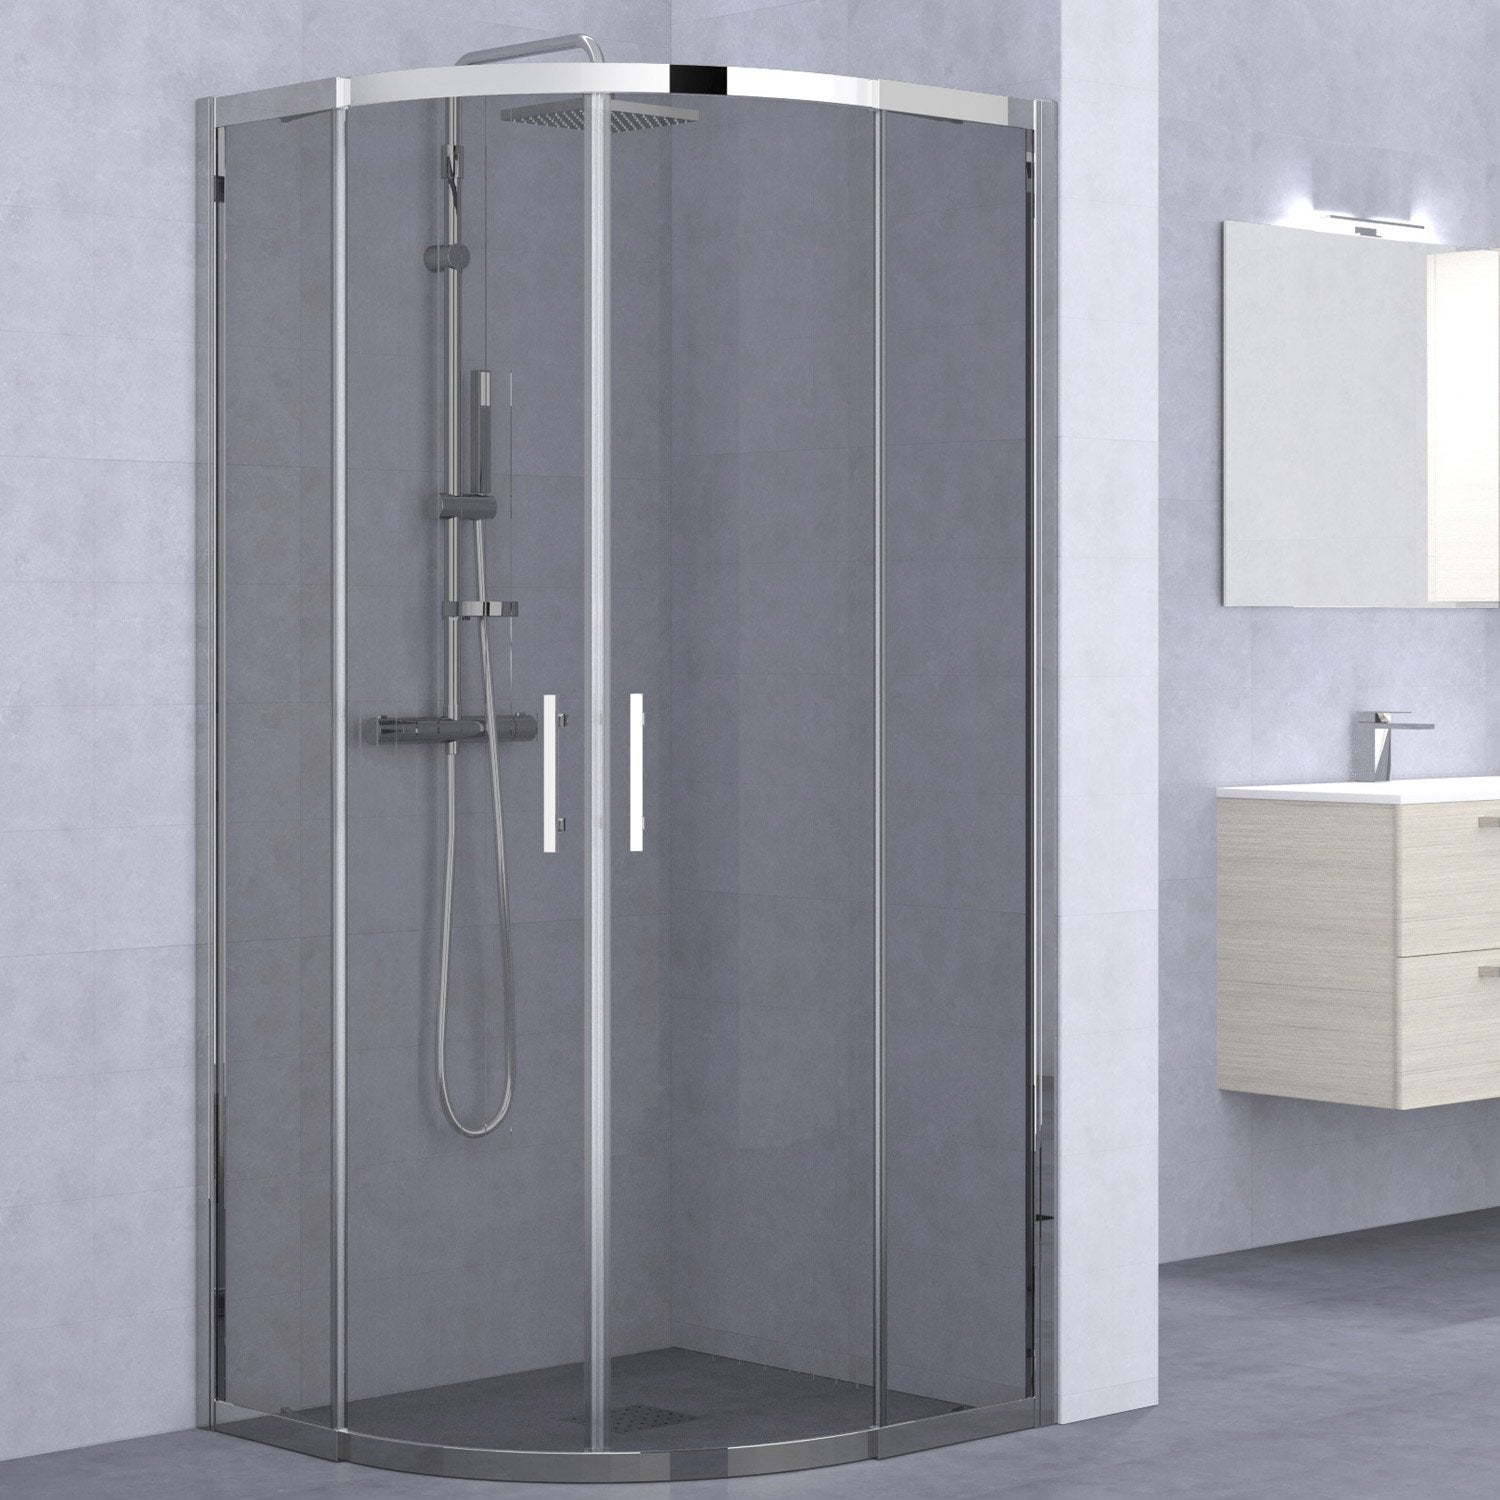 porte de douche coulissante angle 1 4 de cercle x cm chrom elyt leroy merlin. Black Bedroom Furniture Sets. Home Design Ideas